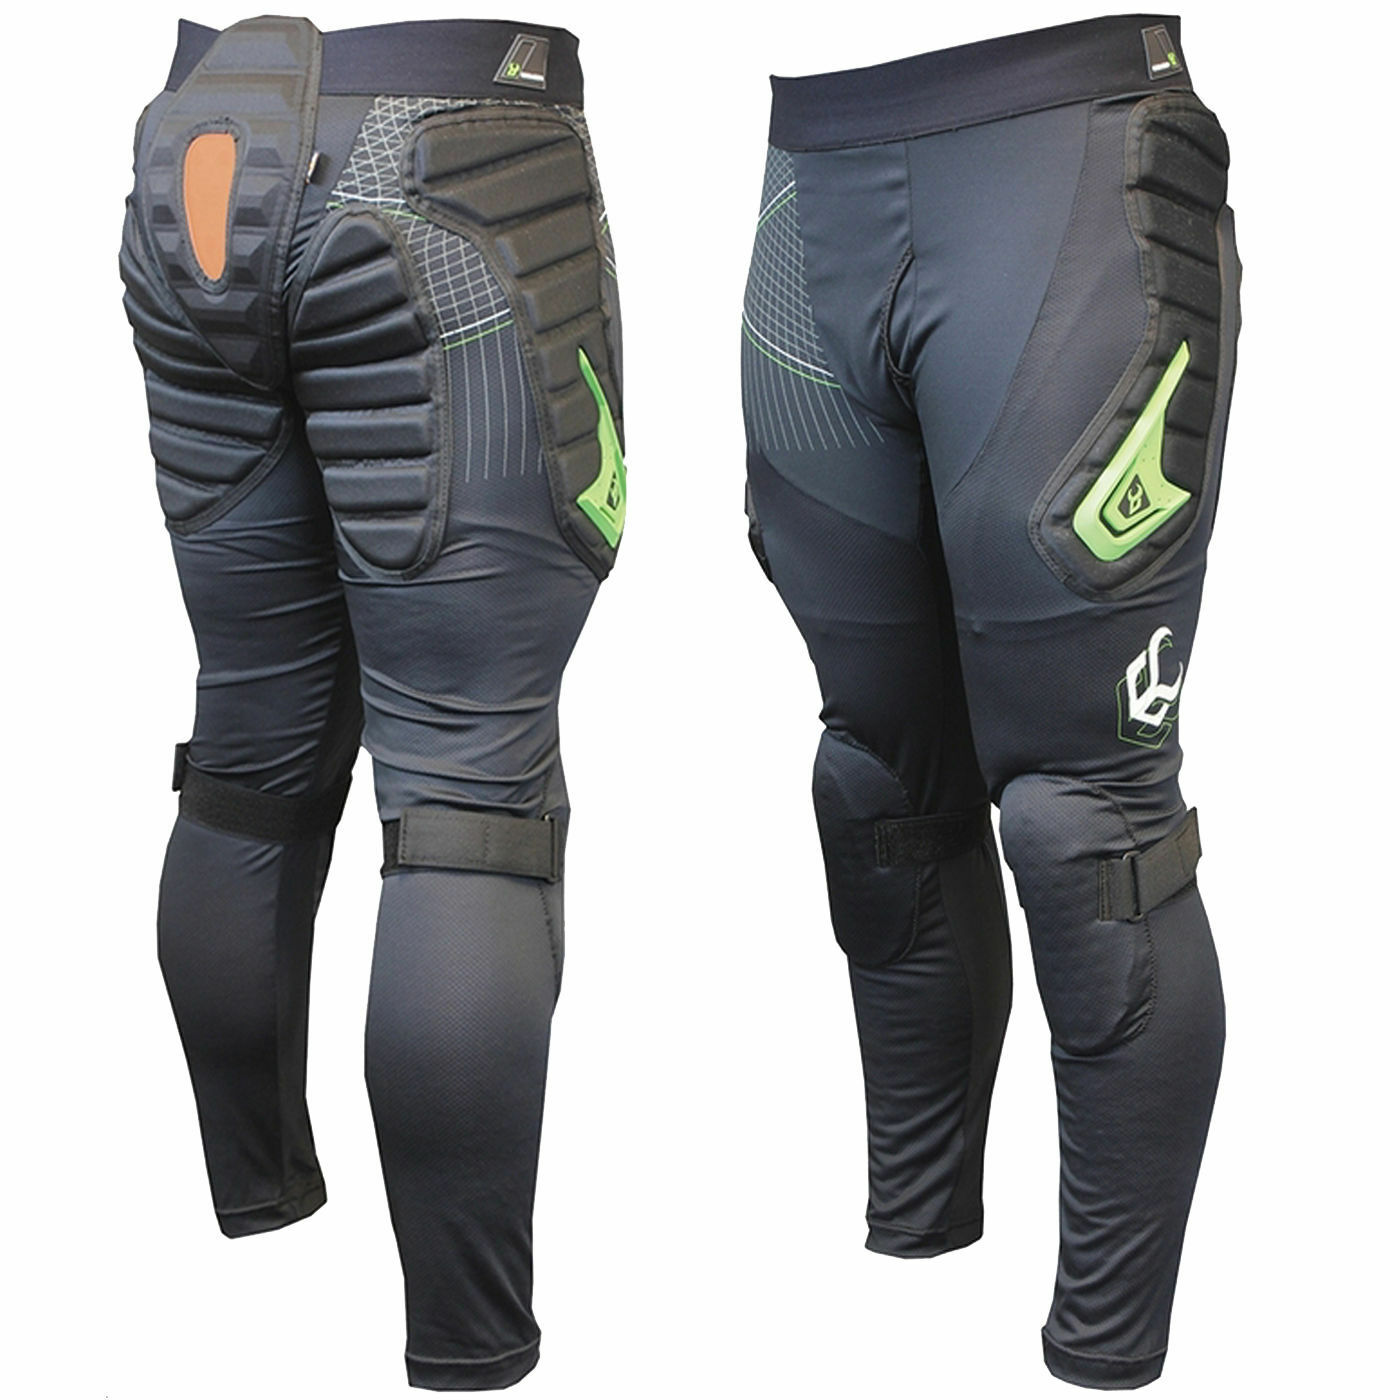 DEMON V2 --X D30 Long Padded Snowboard Pants  Hips, Bum  Knie Pads --DS1491